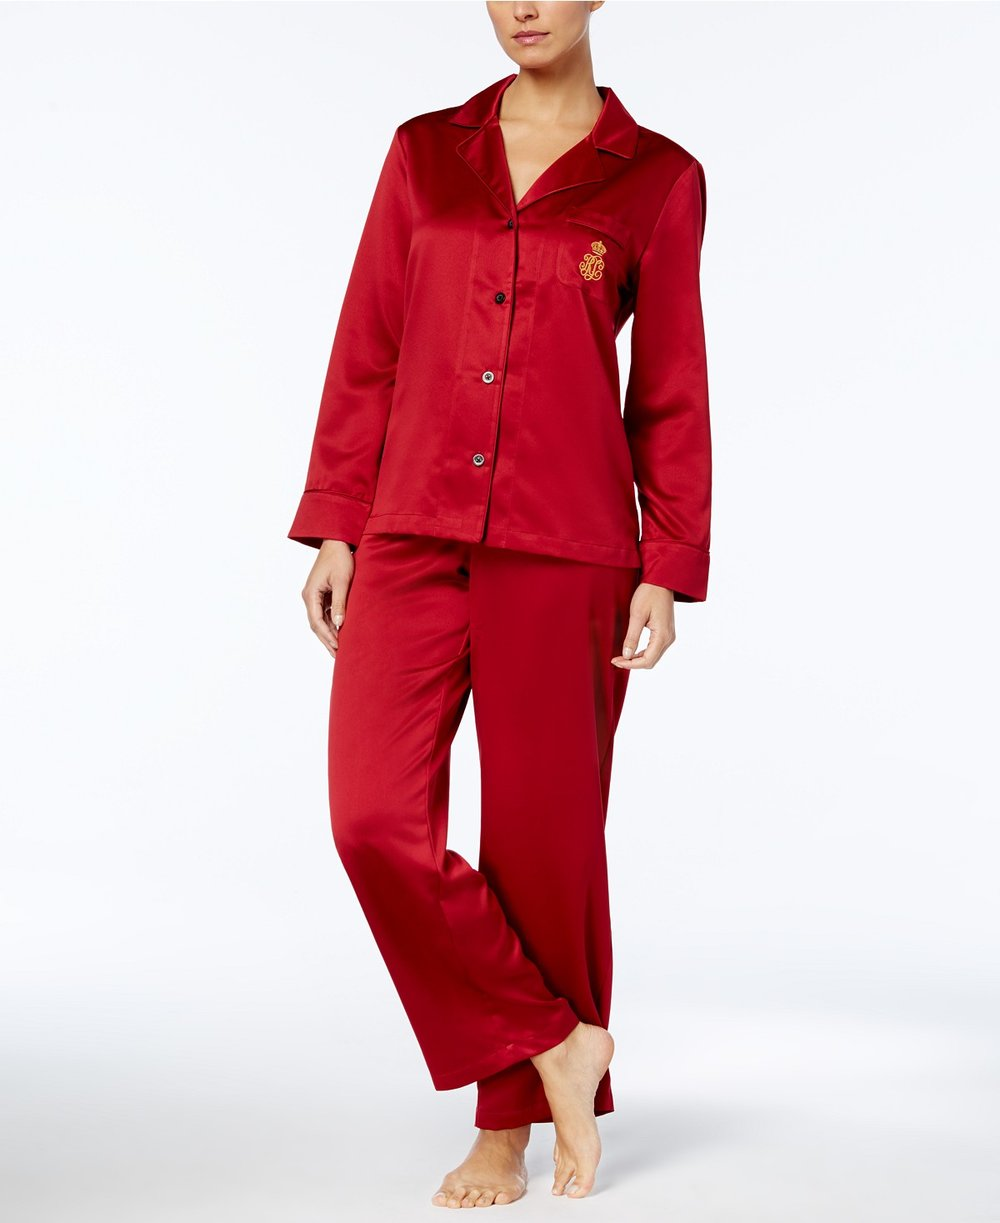 Red Satin Pajama Set.jpg